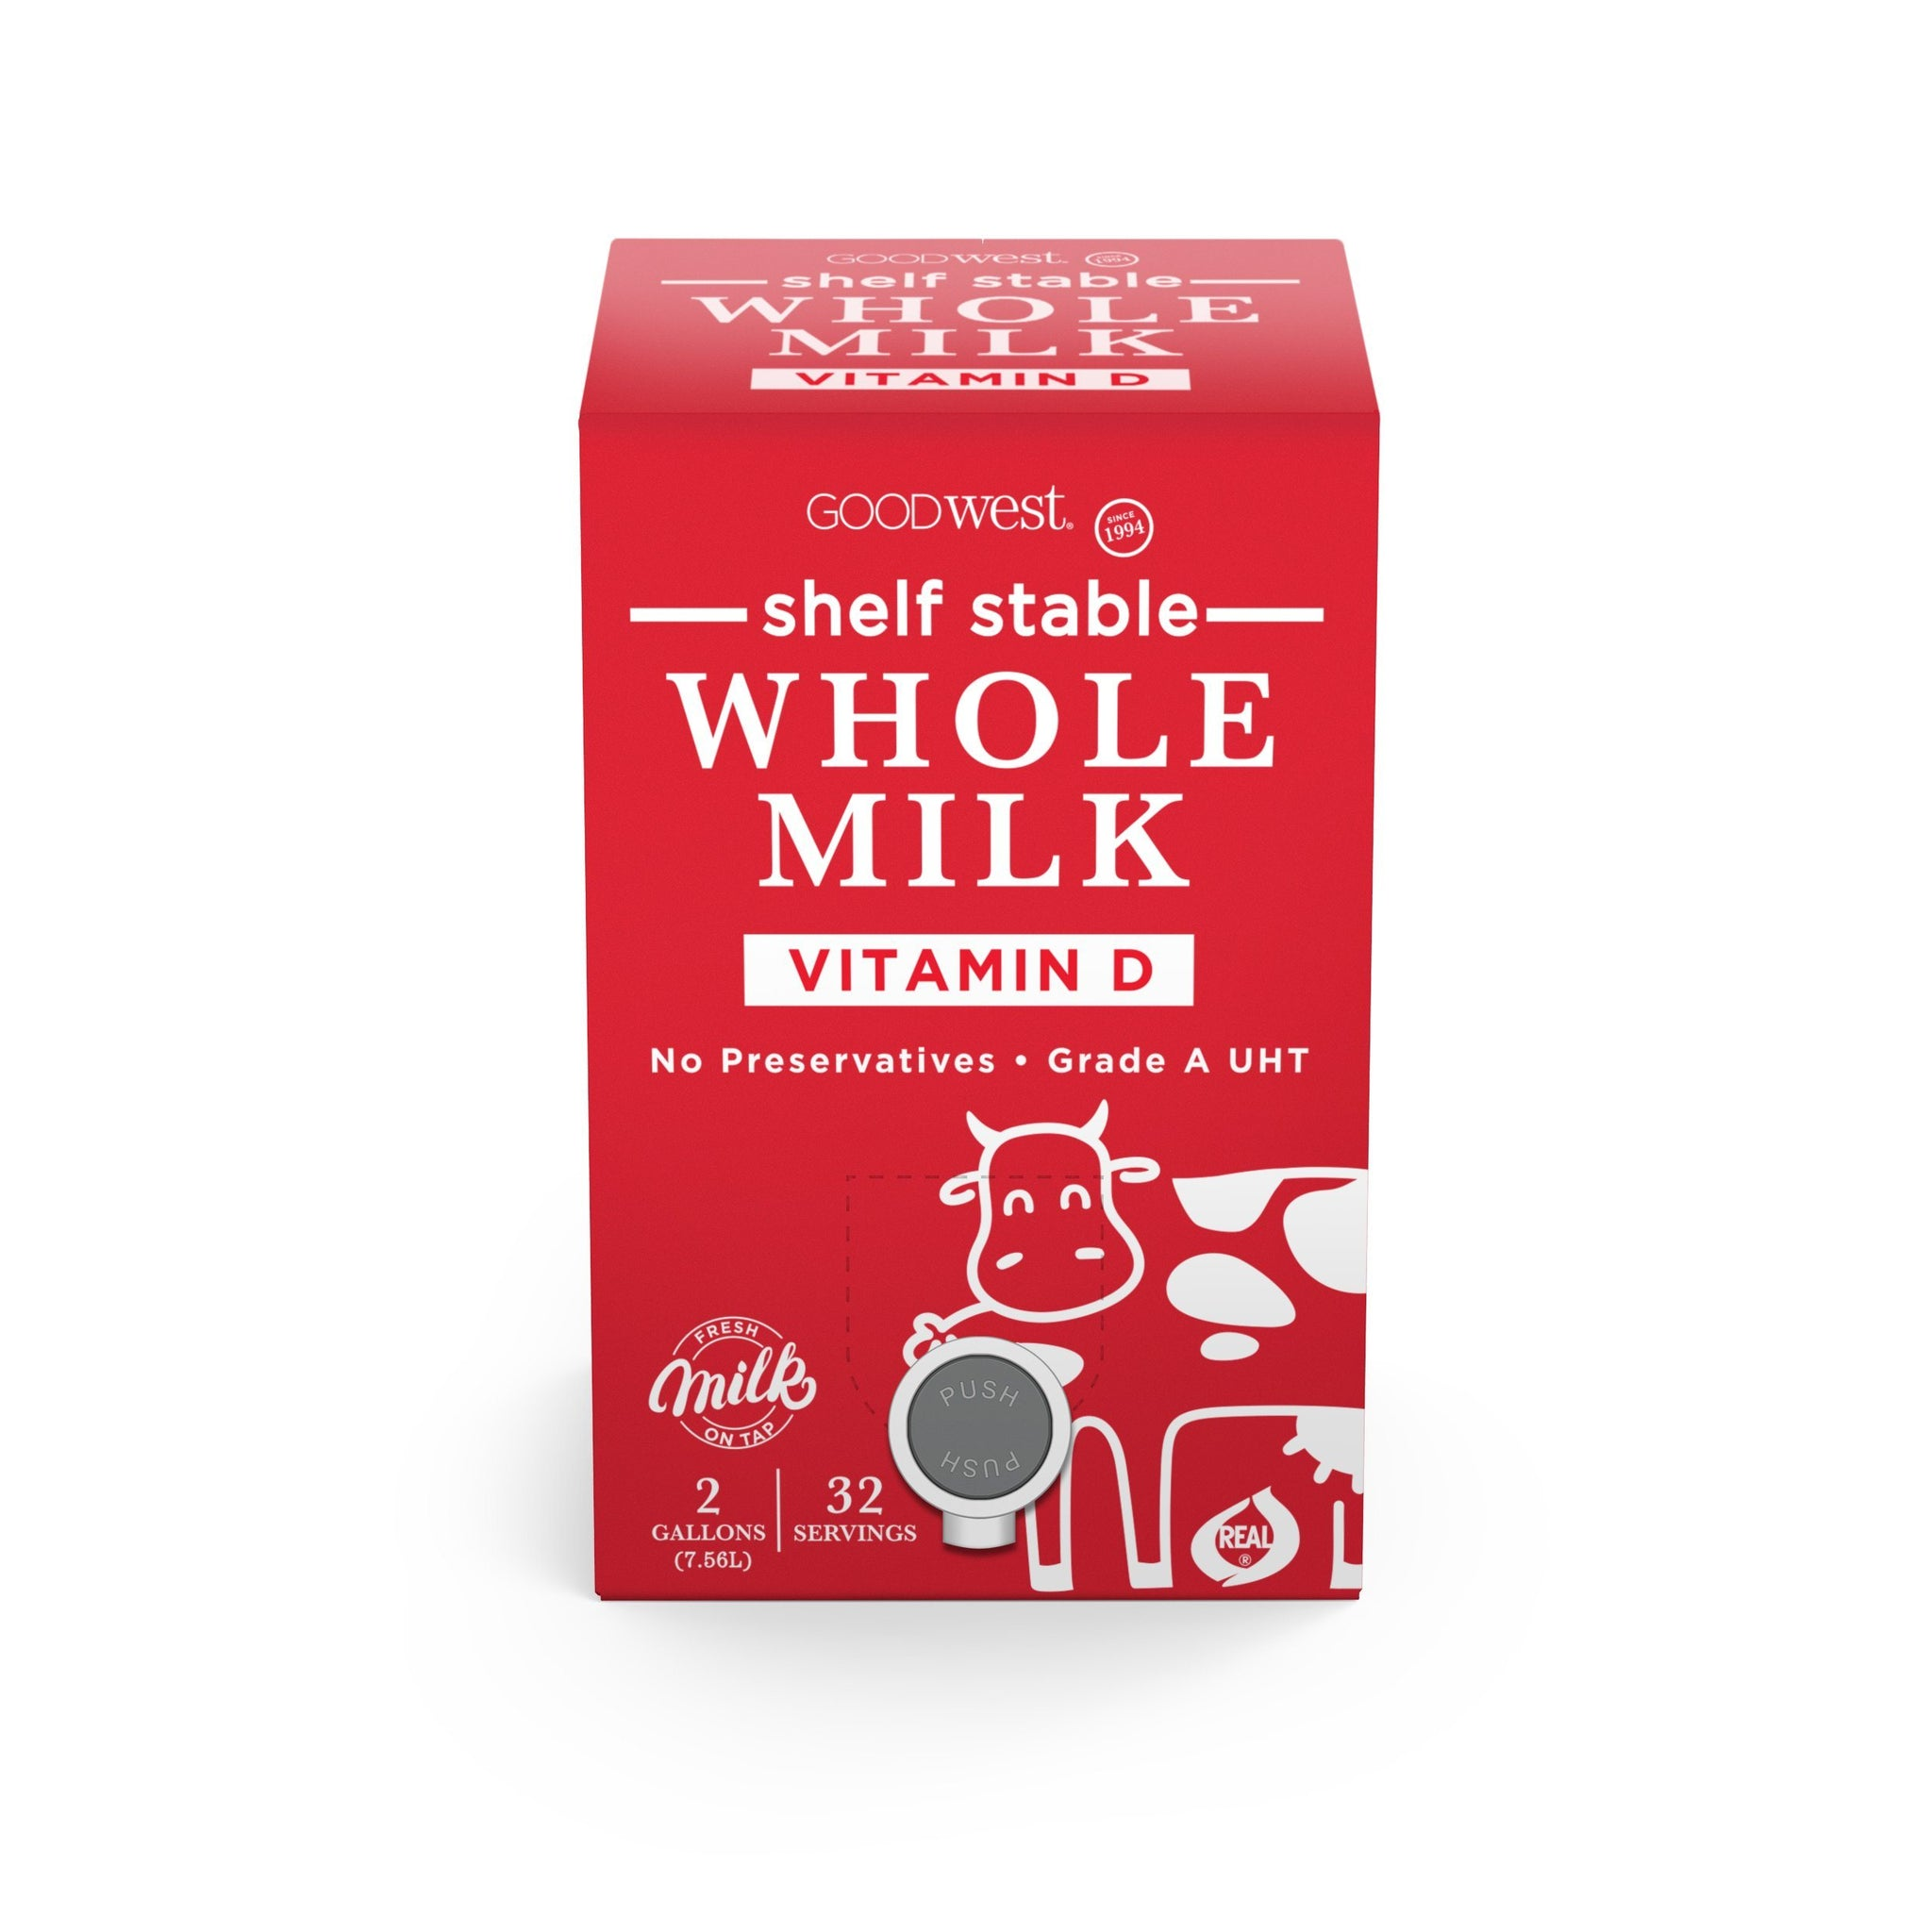 2 Gallon Whole Milk - Shelf Stable Skinny Syrups